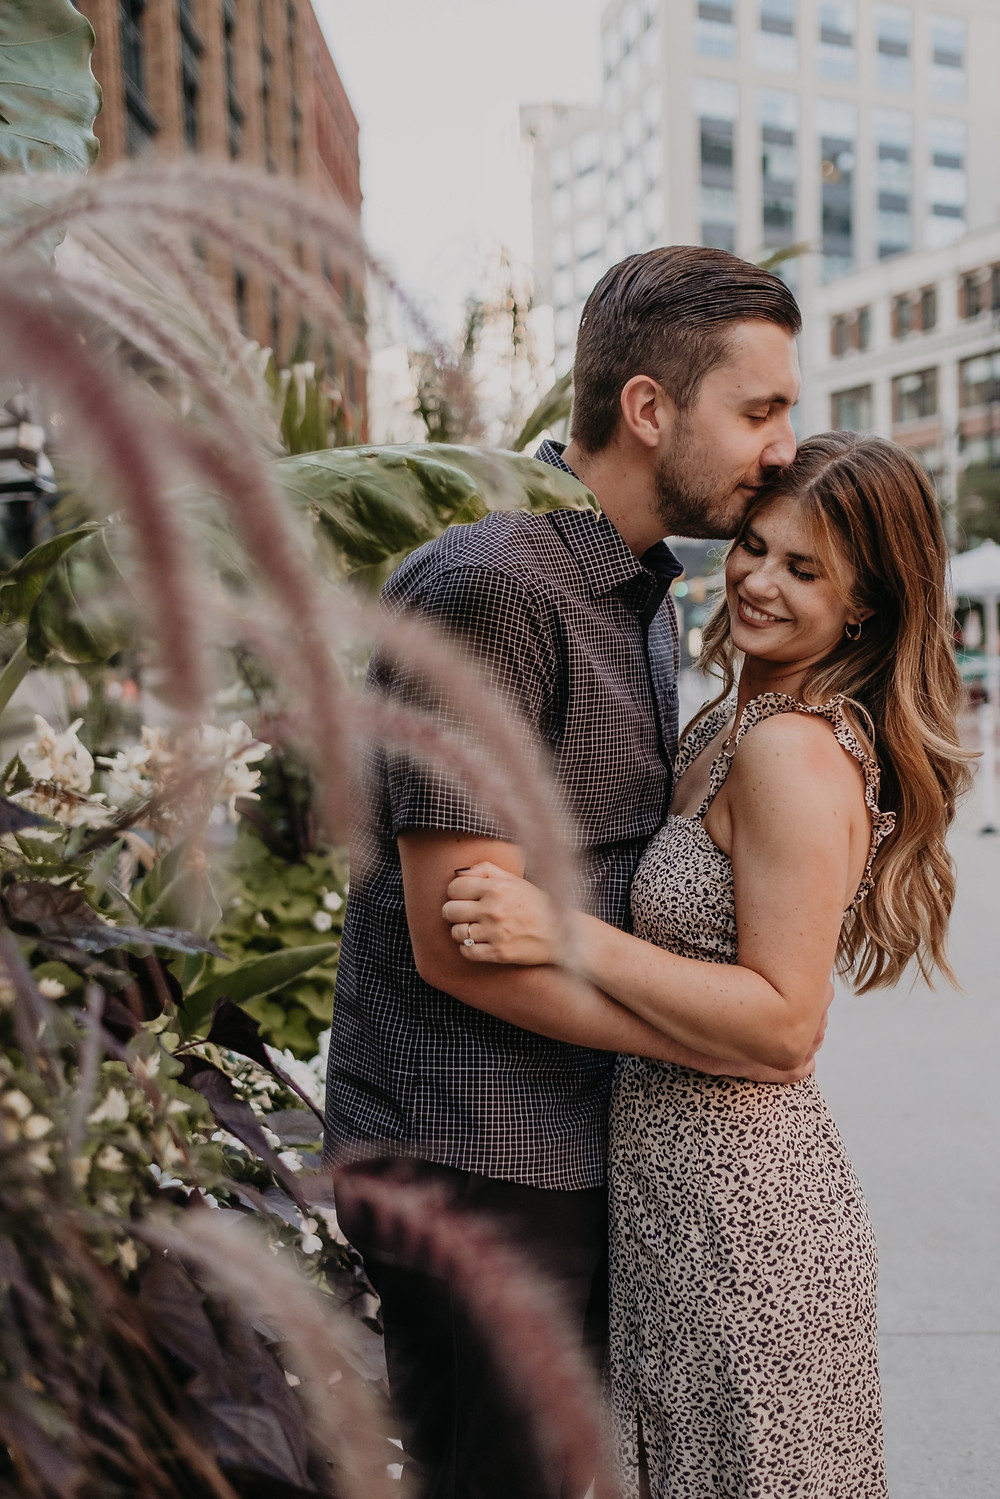 Detroit engagement photos with building and flowers. Photographed by Nicole Leanne Photography.